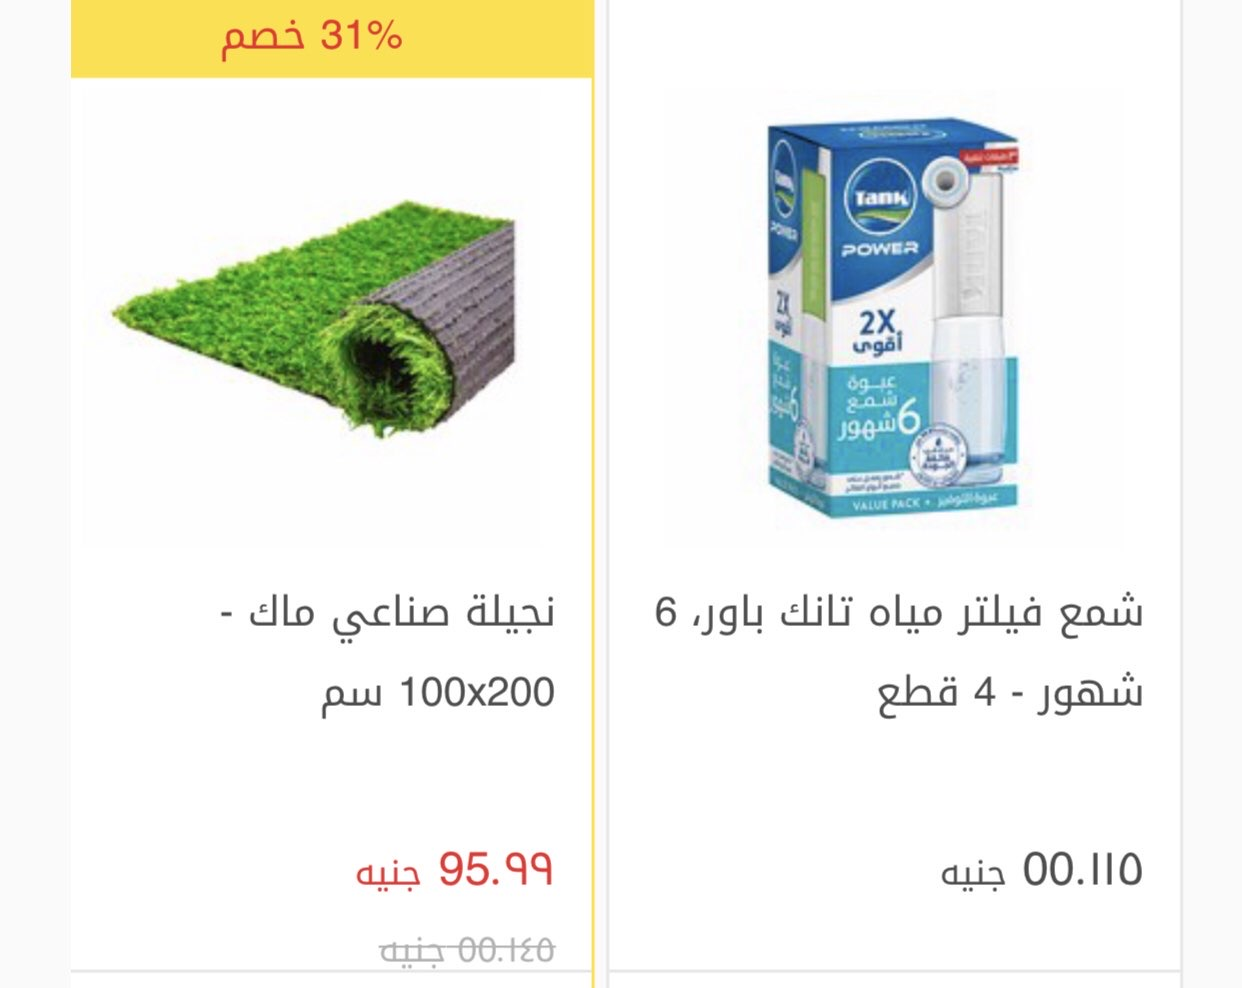 New Carrefour Egypt introduces 50 EGP discount codes on your first order. 13